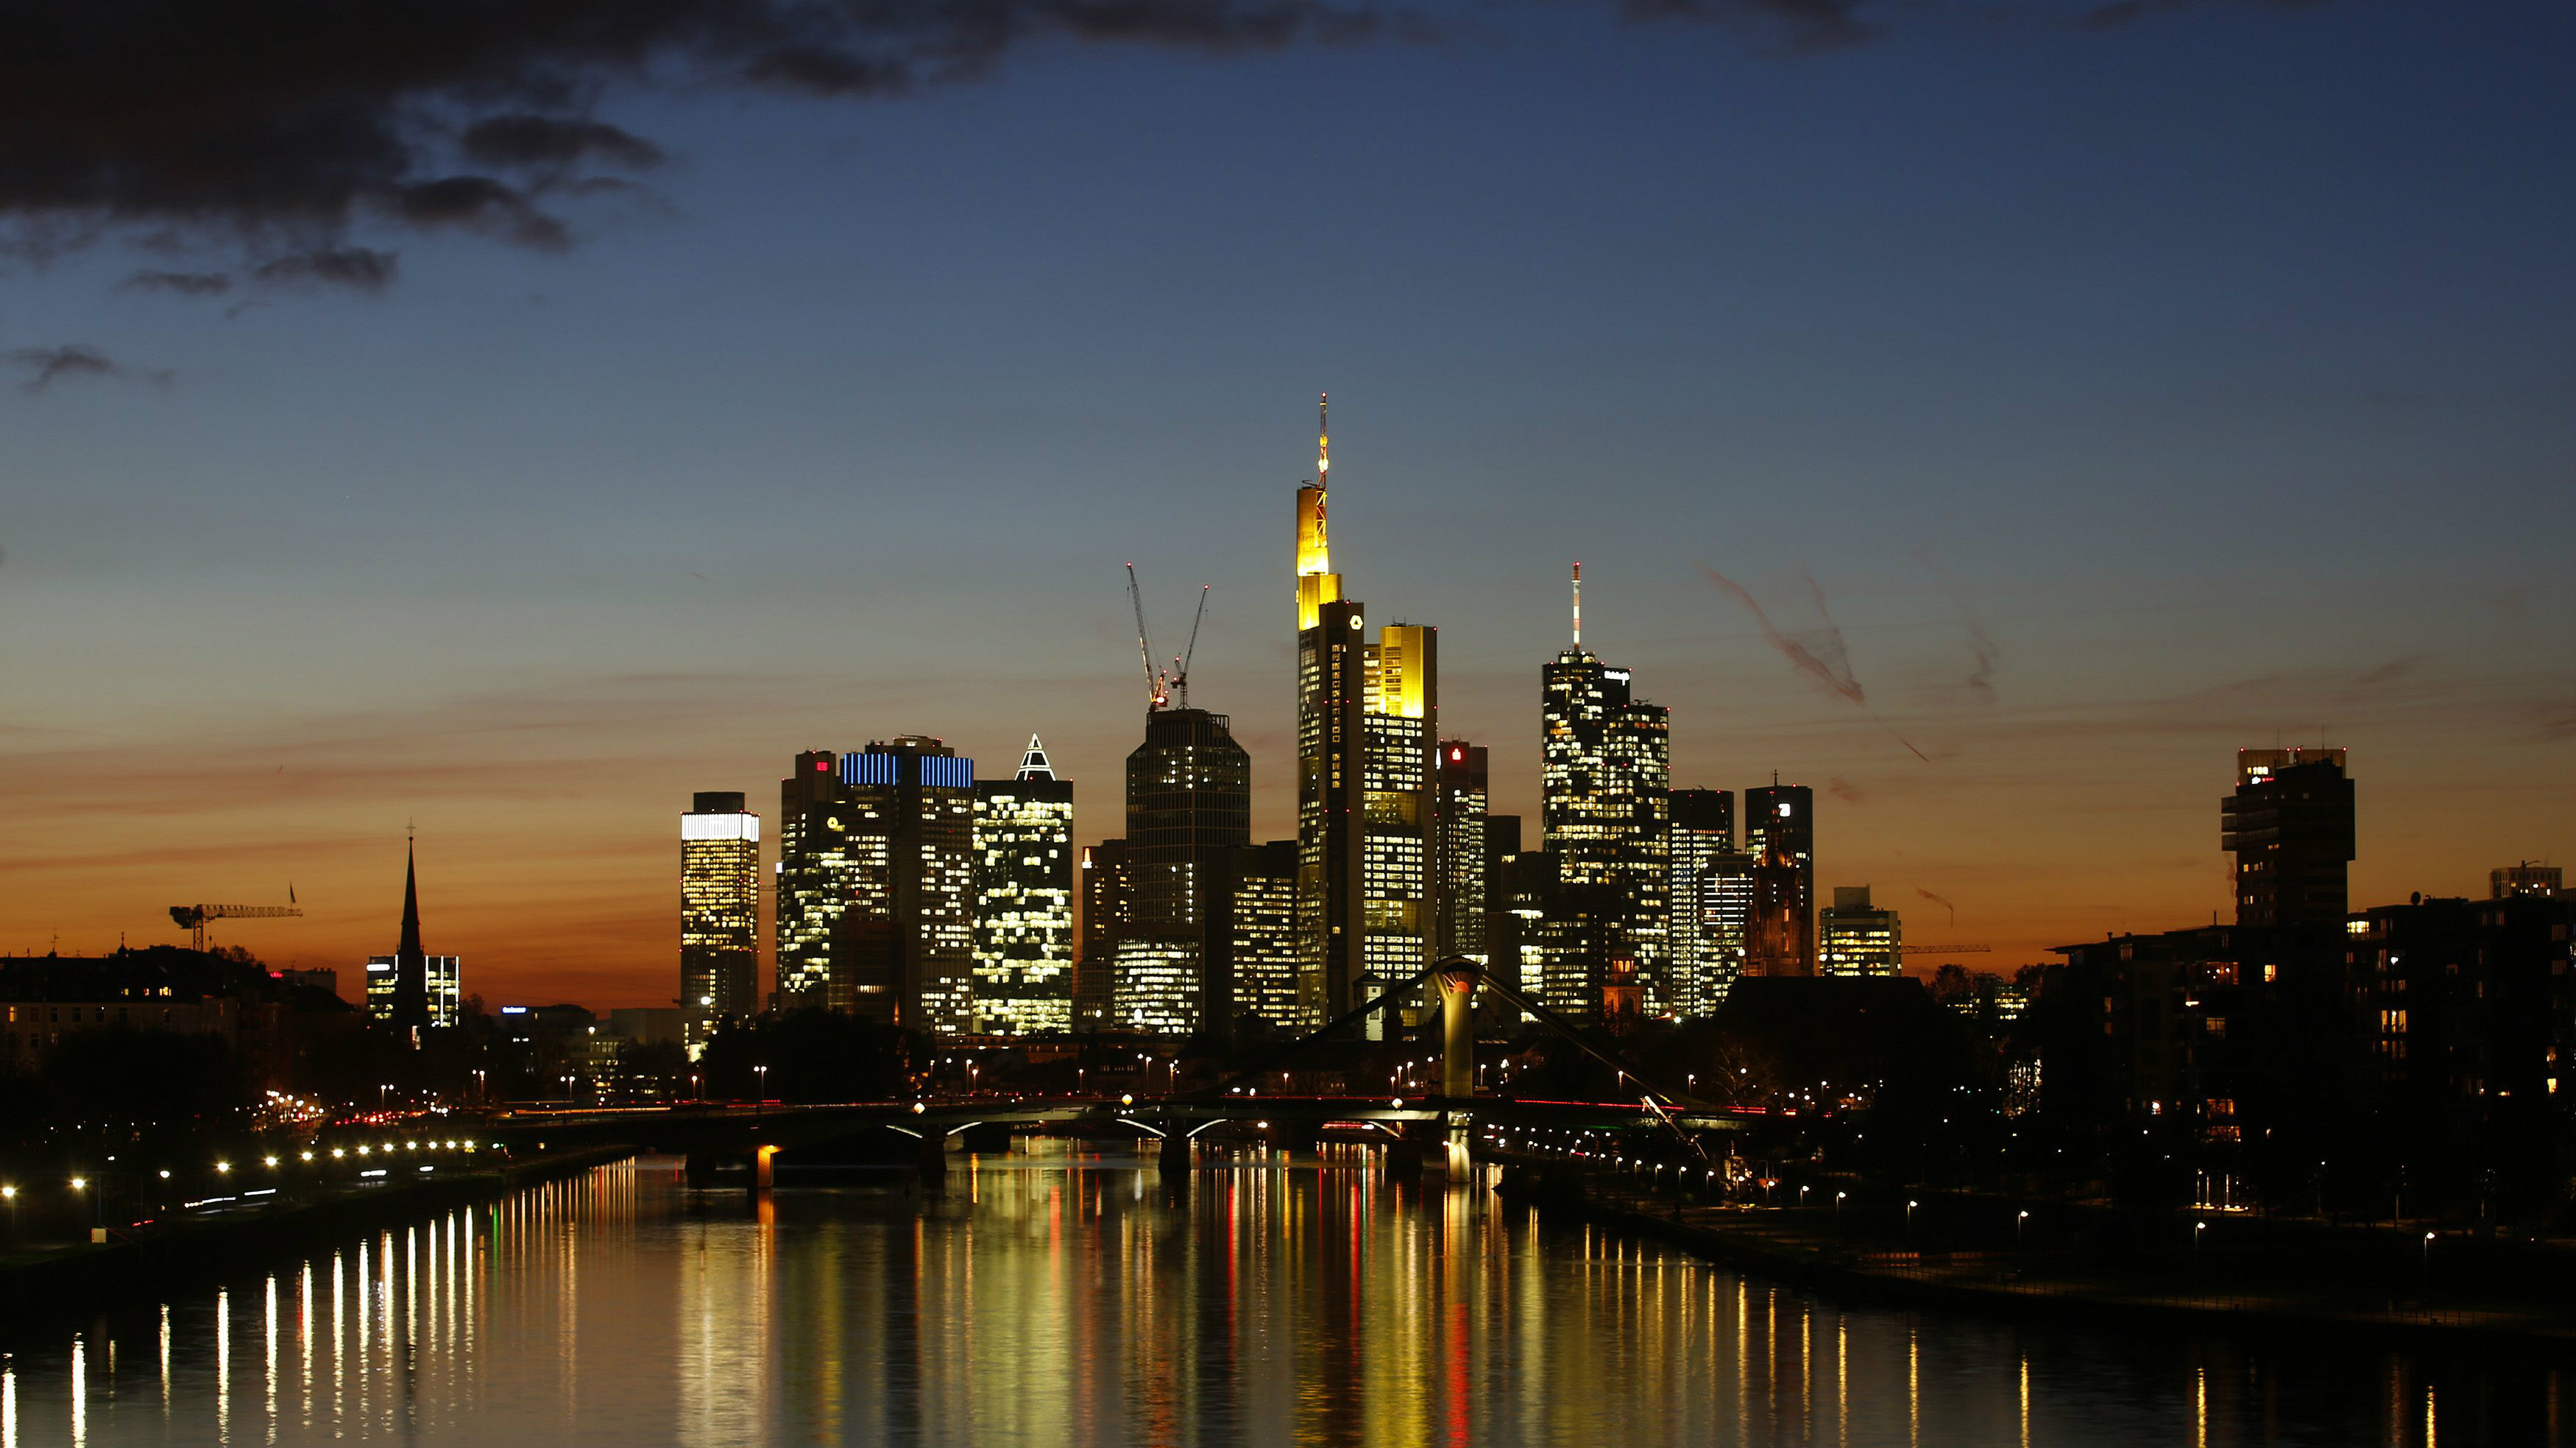 The characteristic skyline of Frankfurt with its banking towers is photographed in Frankfurt, October 30, 2013. REUTERS/Kai Pfaffenbach (GERMANY - Tags: BUSINESS CITYSCAPE)